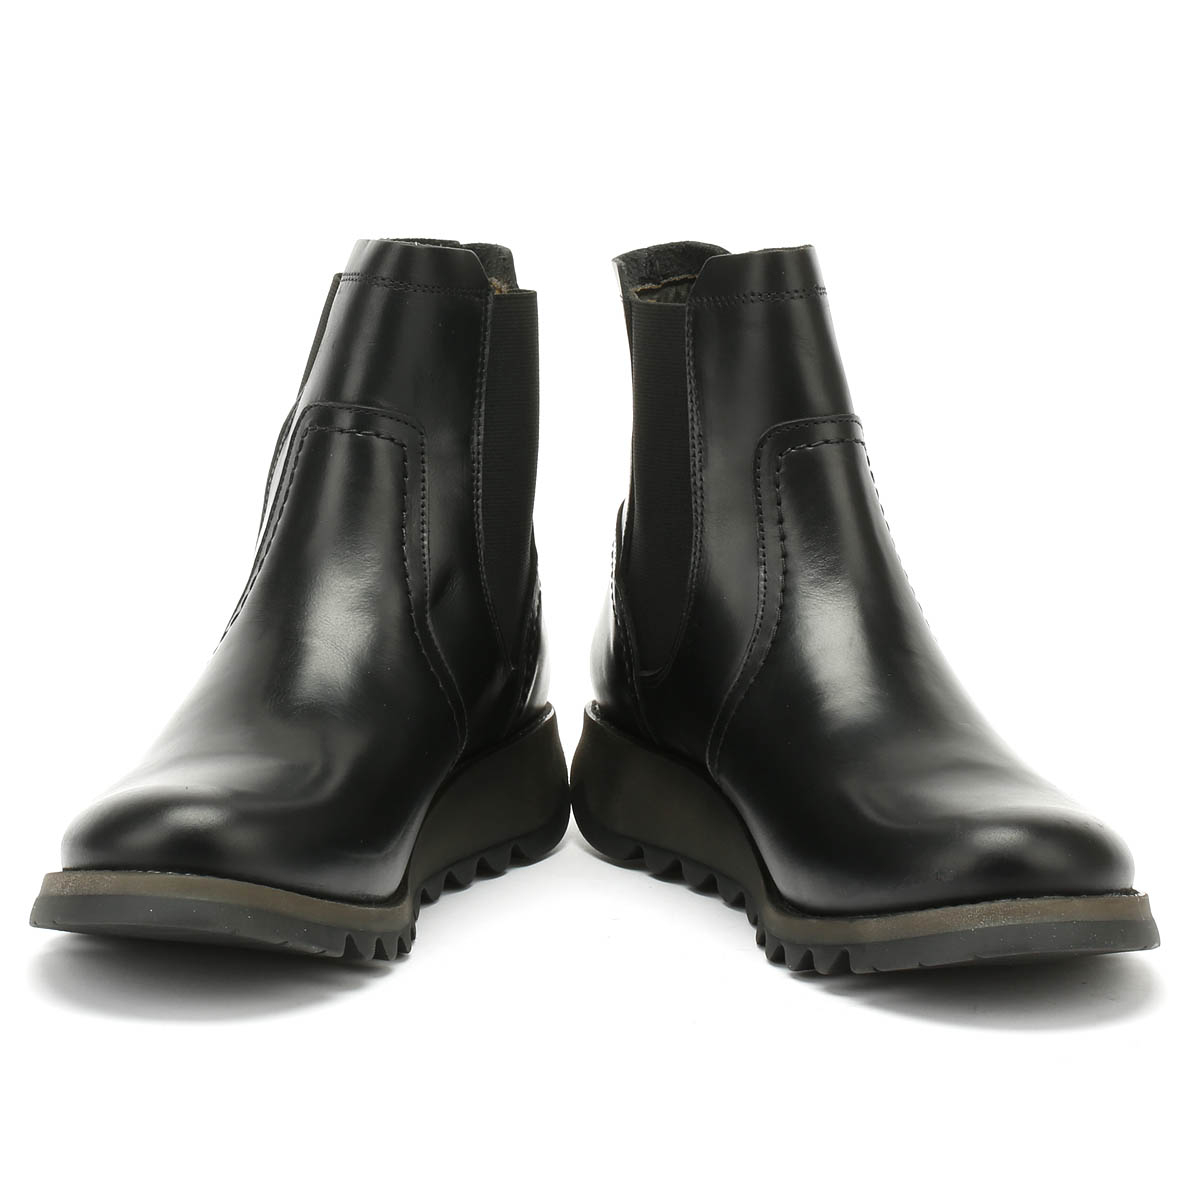 Fly-London-Womens-Boots-Black-Scon-Rug-Ladies-Leather-Winter-Ankle-Shoes thumbnail 28